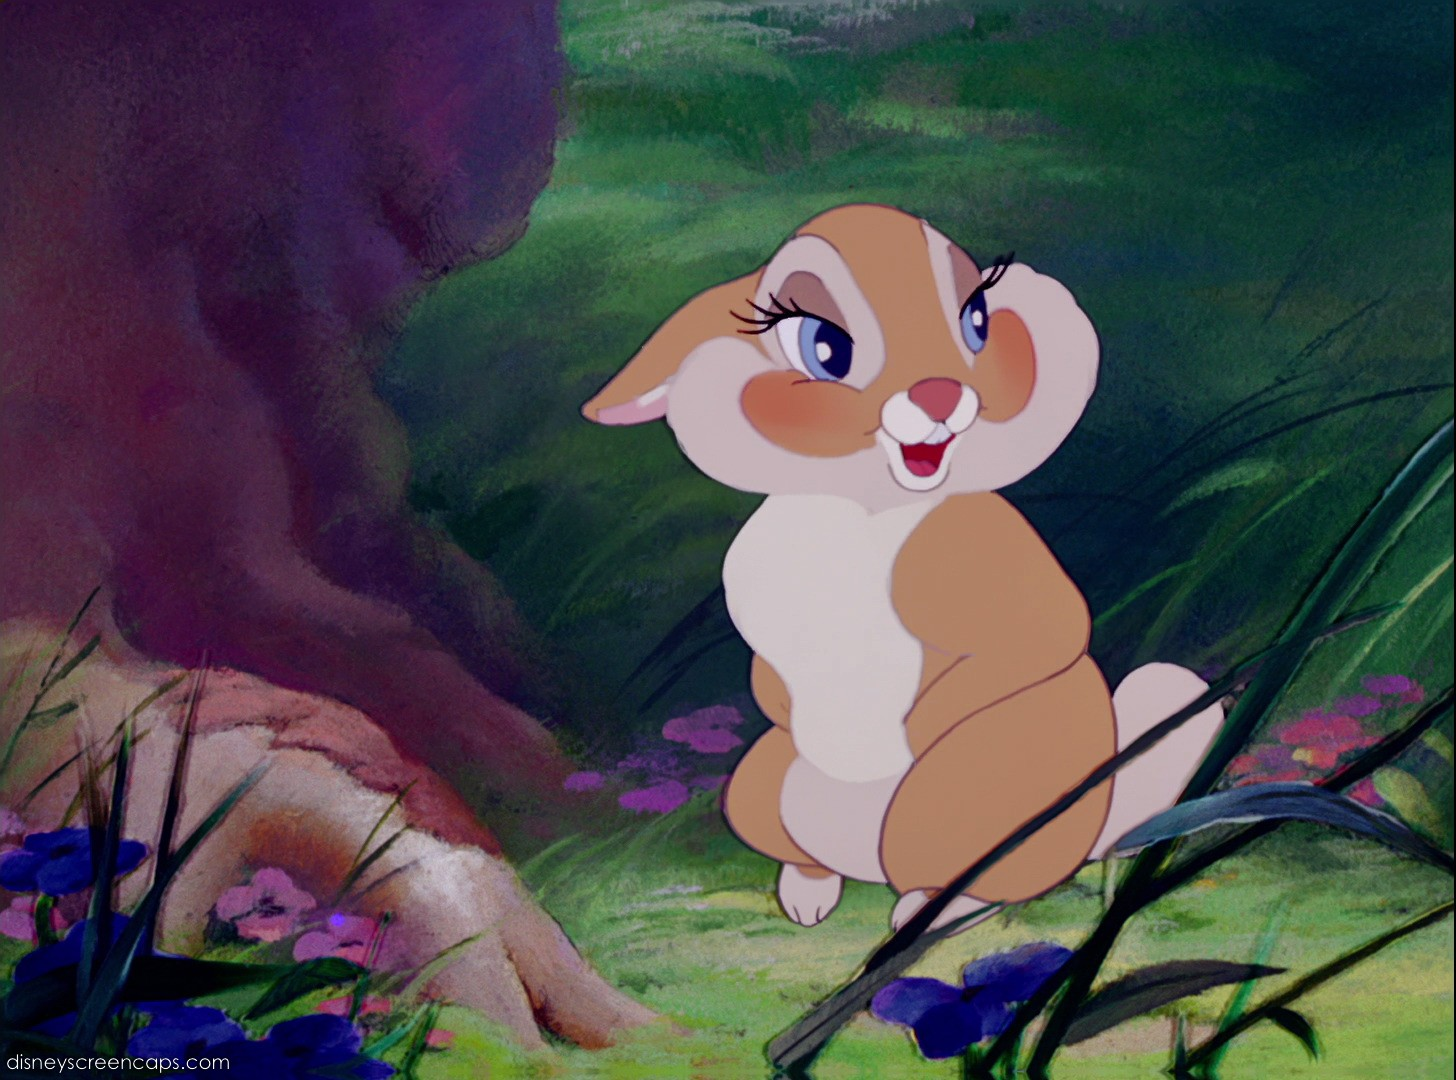 Bambi is so